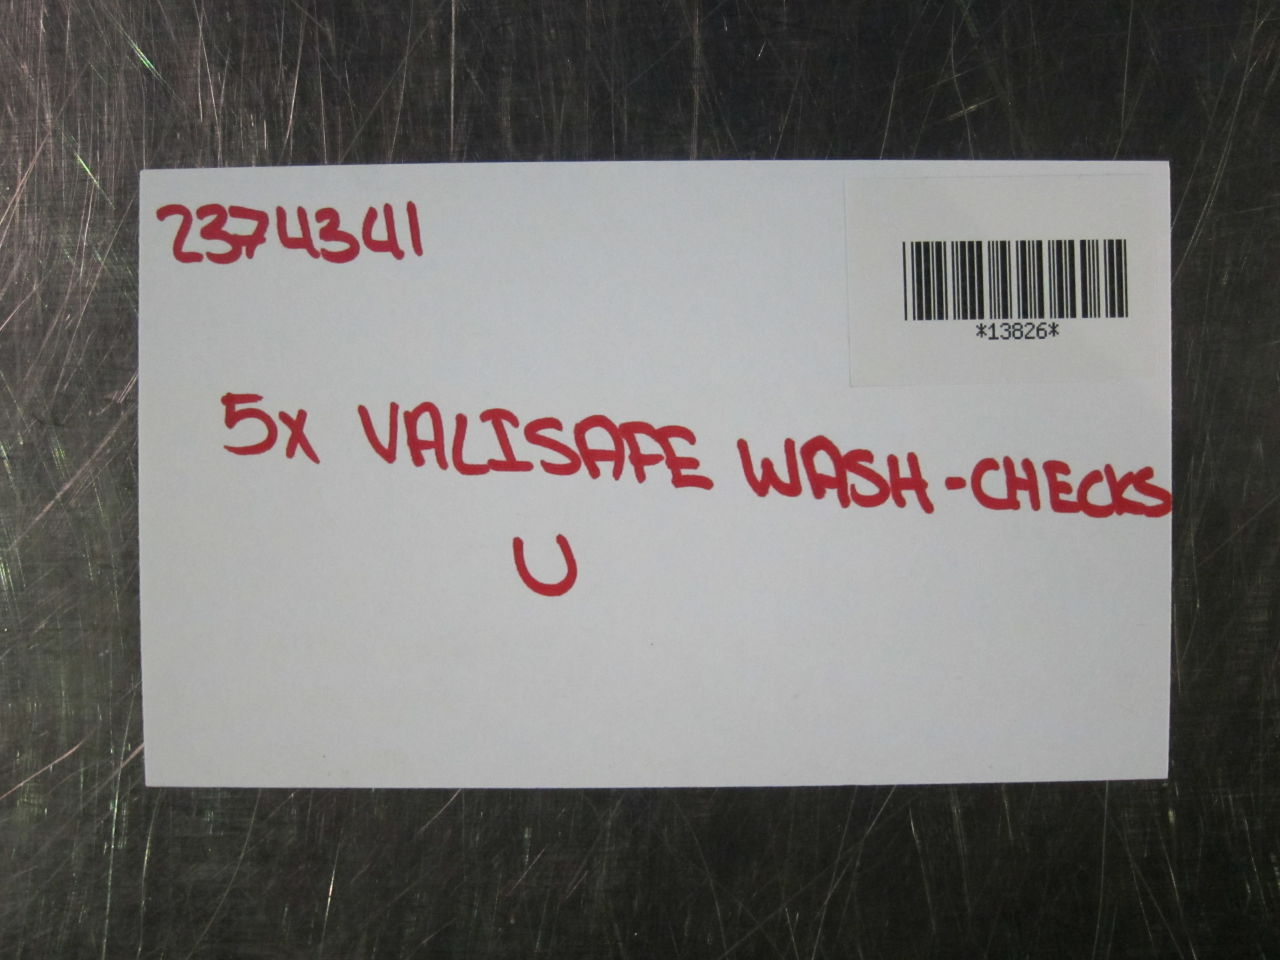 VALISAFE Wash-Checks U